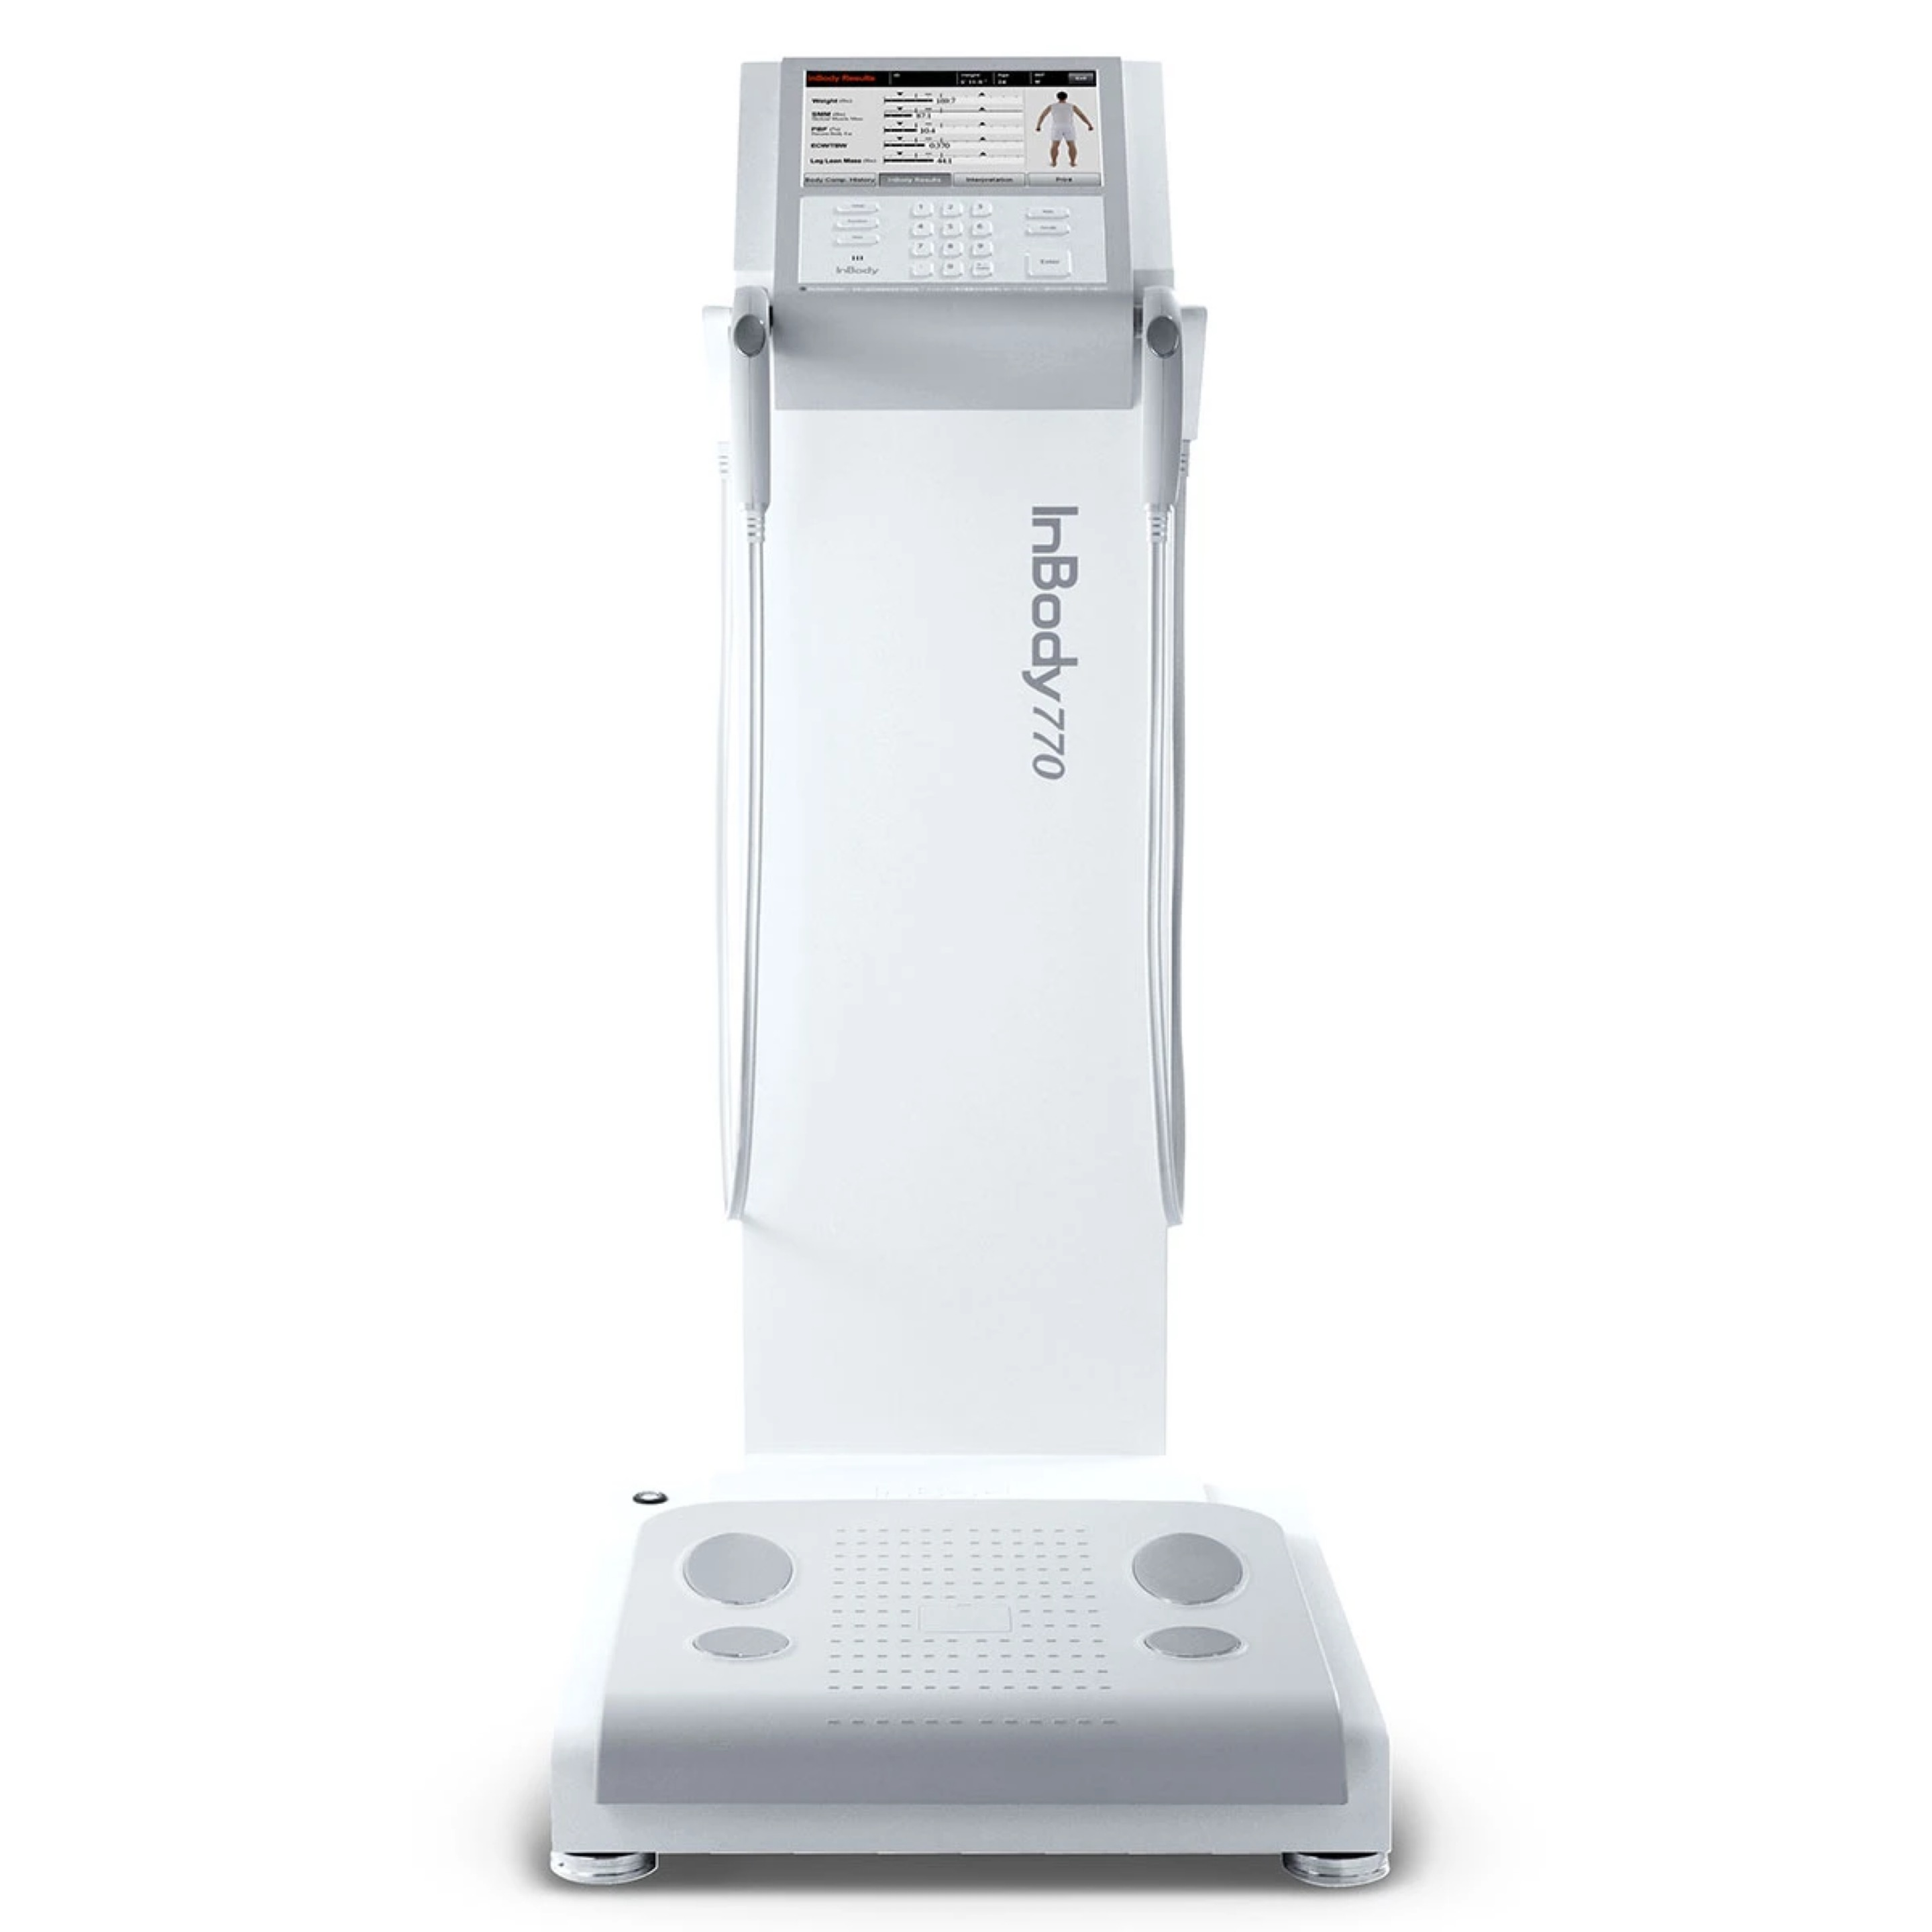 Inbody Body Composition and Body Water Analysis machine